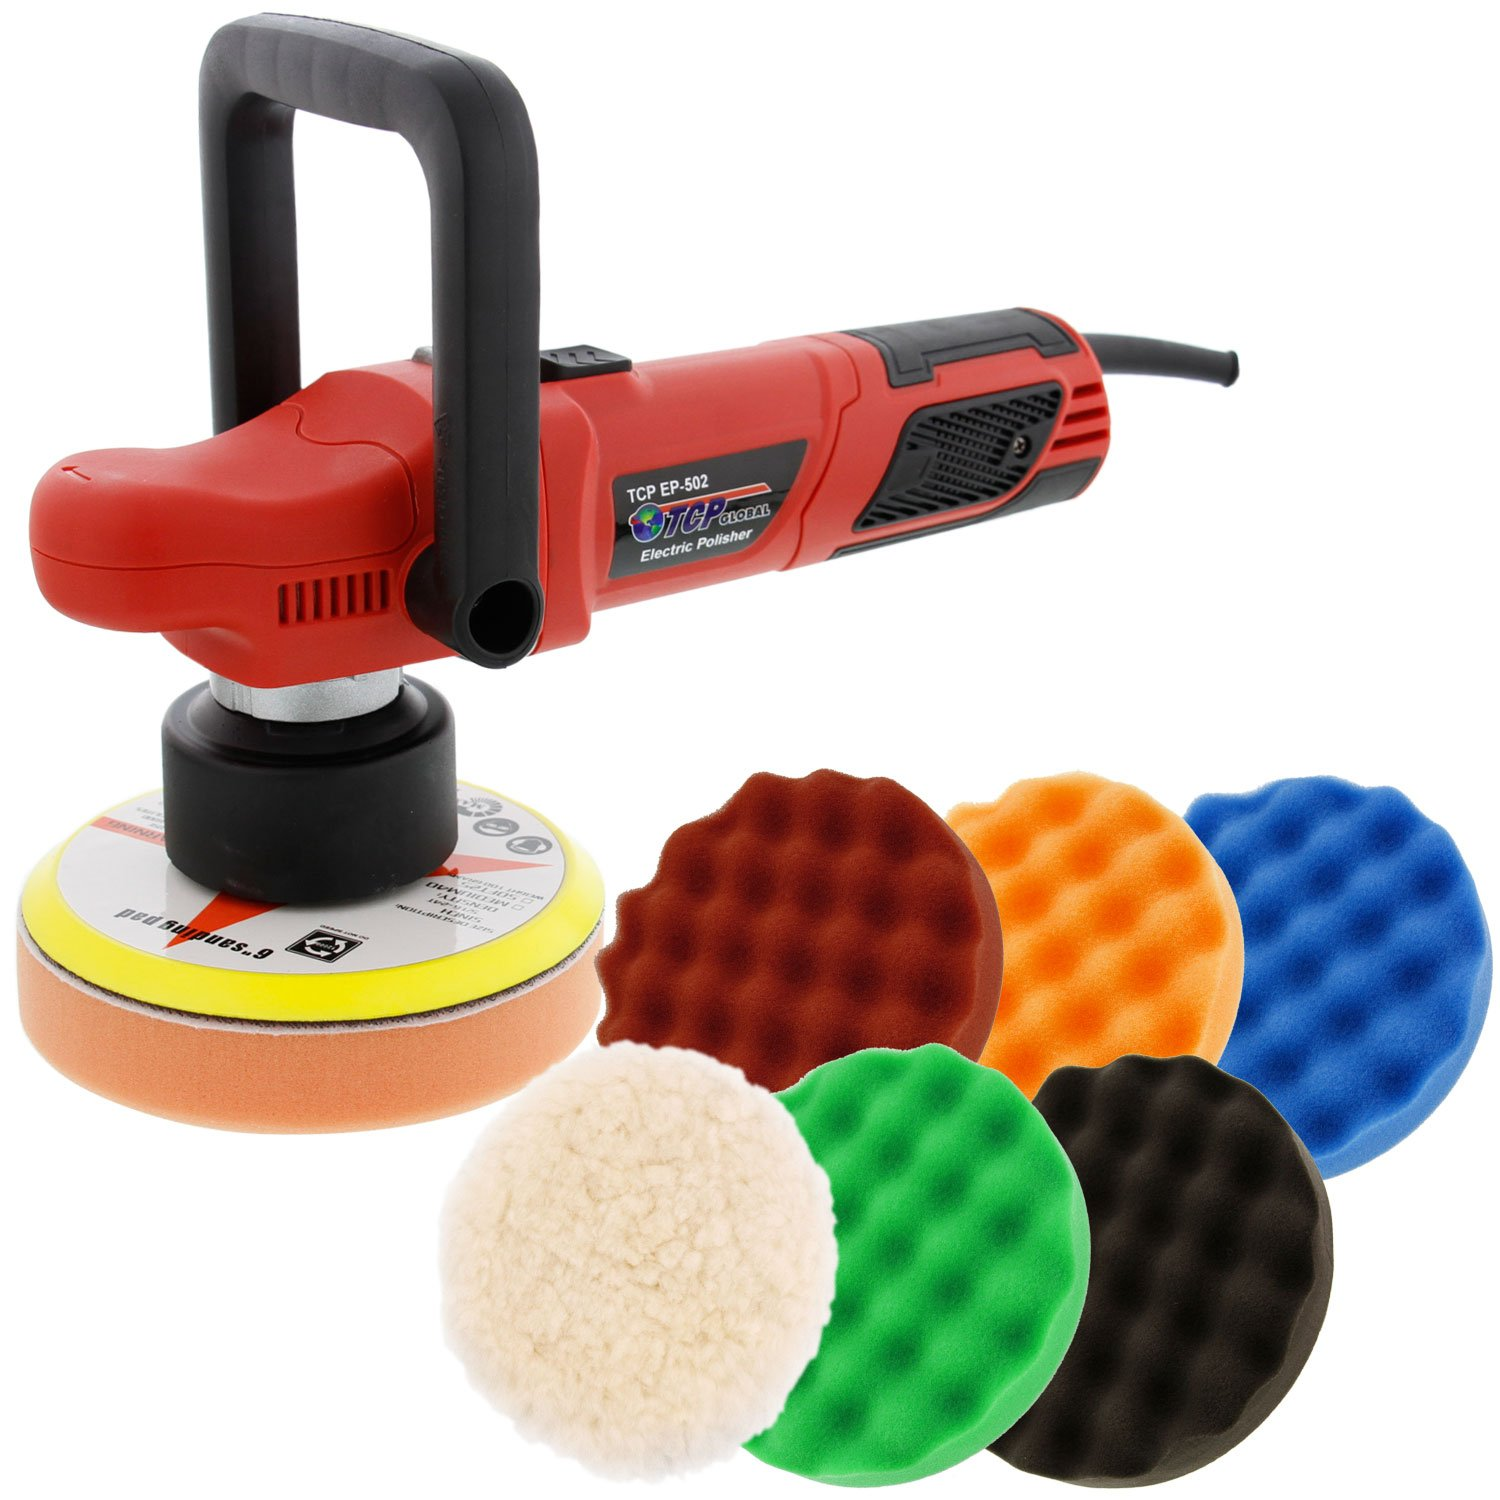 TCP Global Model EP-502-6' Variable Speed Random Orbit Dual-Action Polisher with a 6 Pad (Waffle Foam & Wool) Professional Buffing and Polishing Kit - Buff, Polish & Detail Car Auto Paint